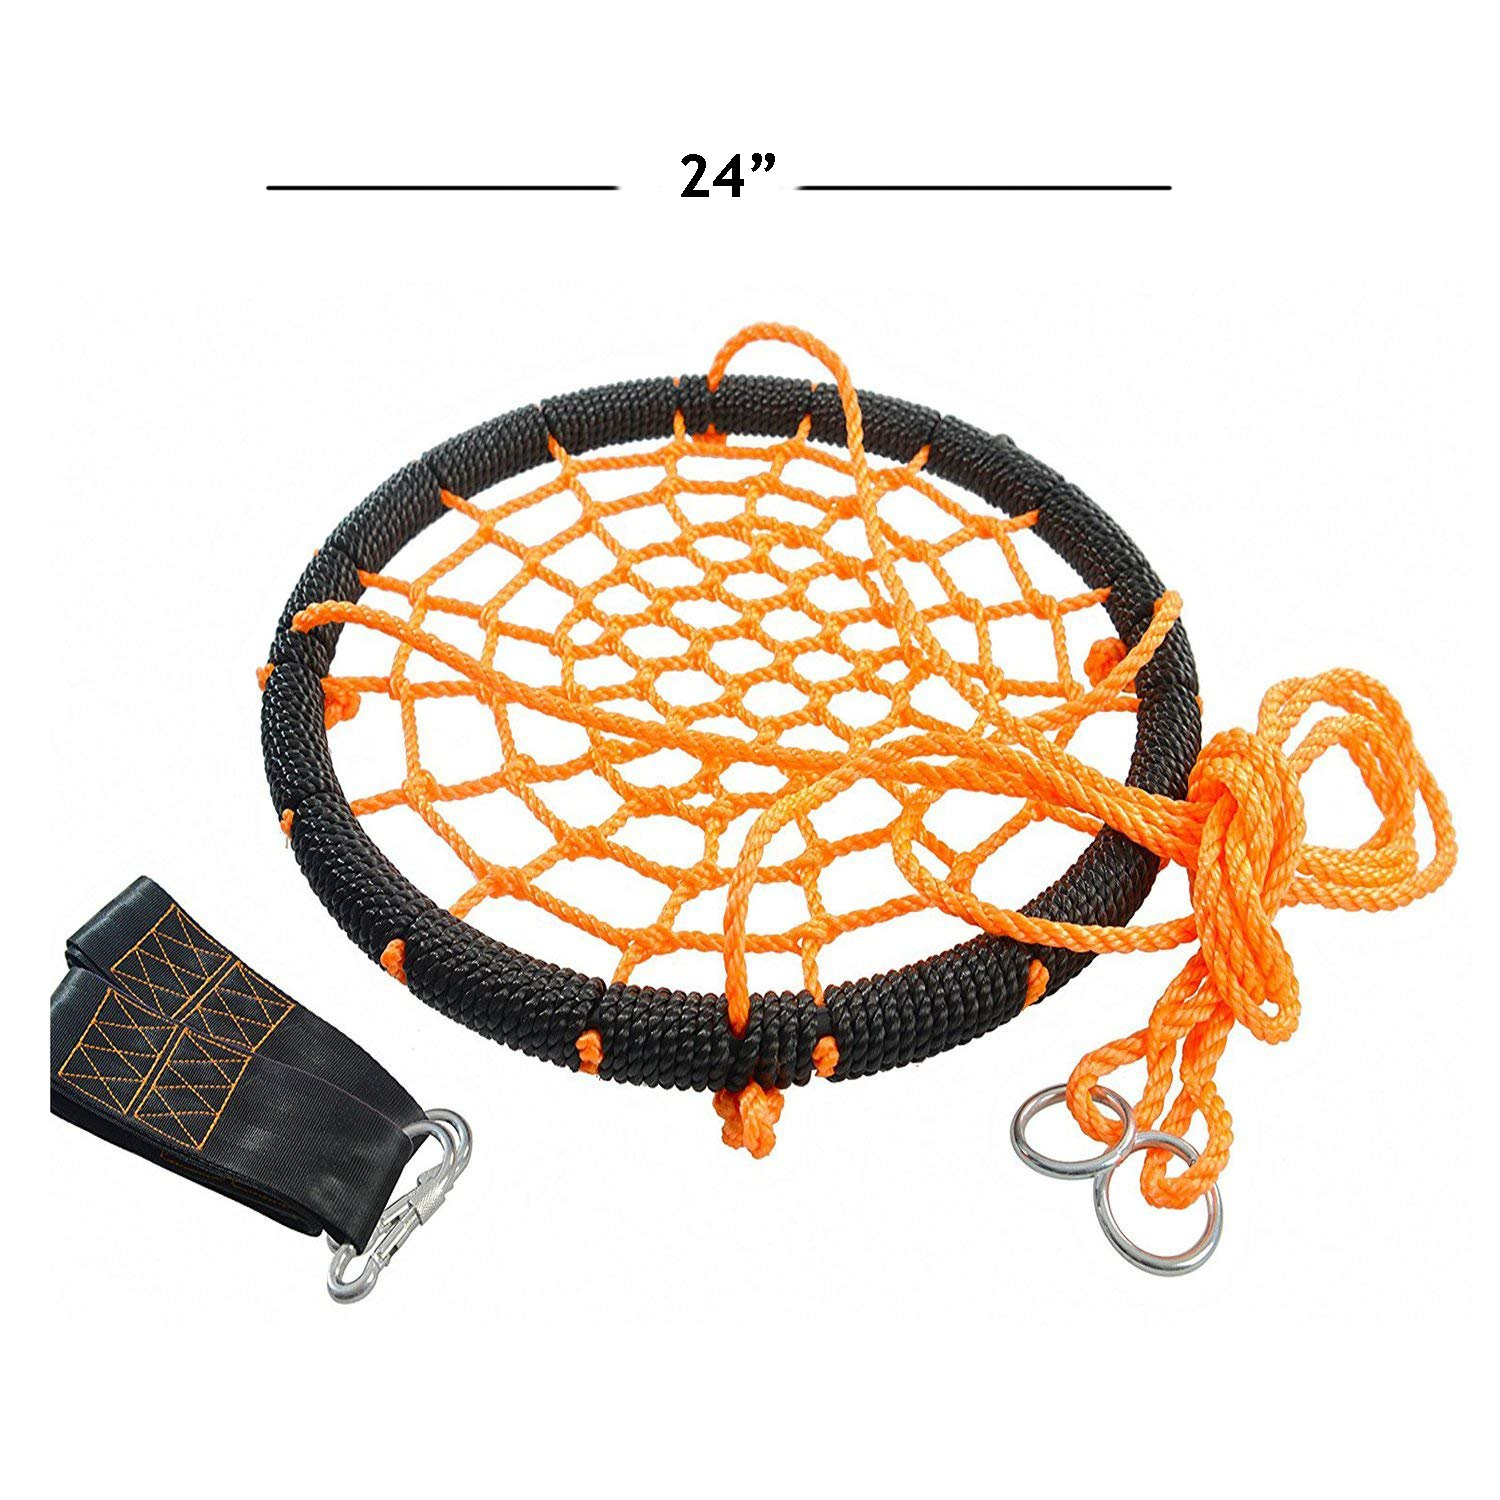 Outroad Web Swing - Great for Tree, Playground, Playroom - 24 Inch Outdoor Spider Net Swing for Kids, Orange, with 2 Extra 60 inch Hanging Straps by OUTROAD OUTDOOR CAMPING GARDEN PATIO (Image #2)